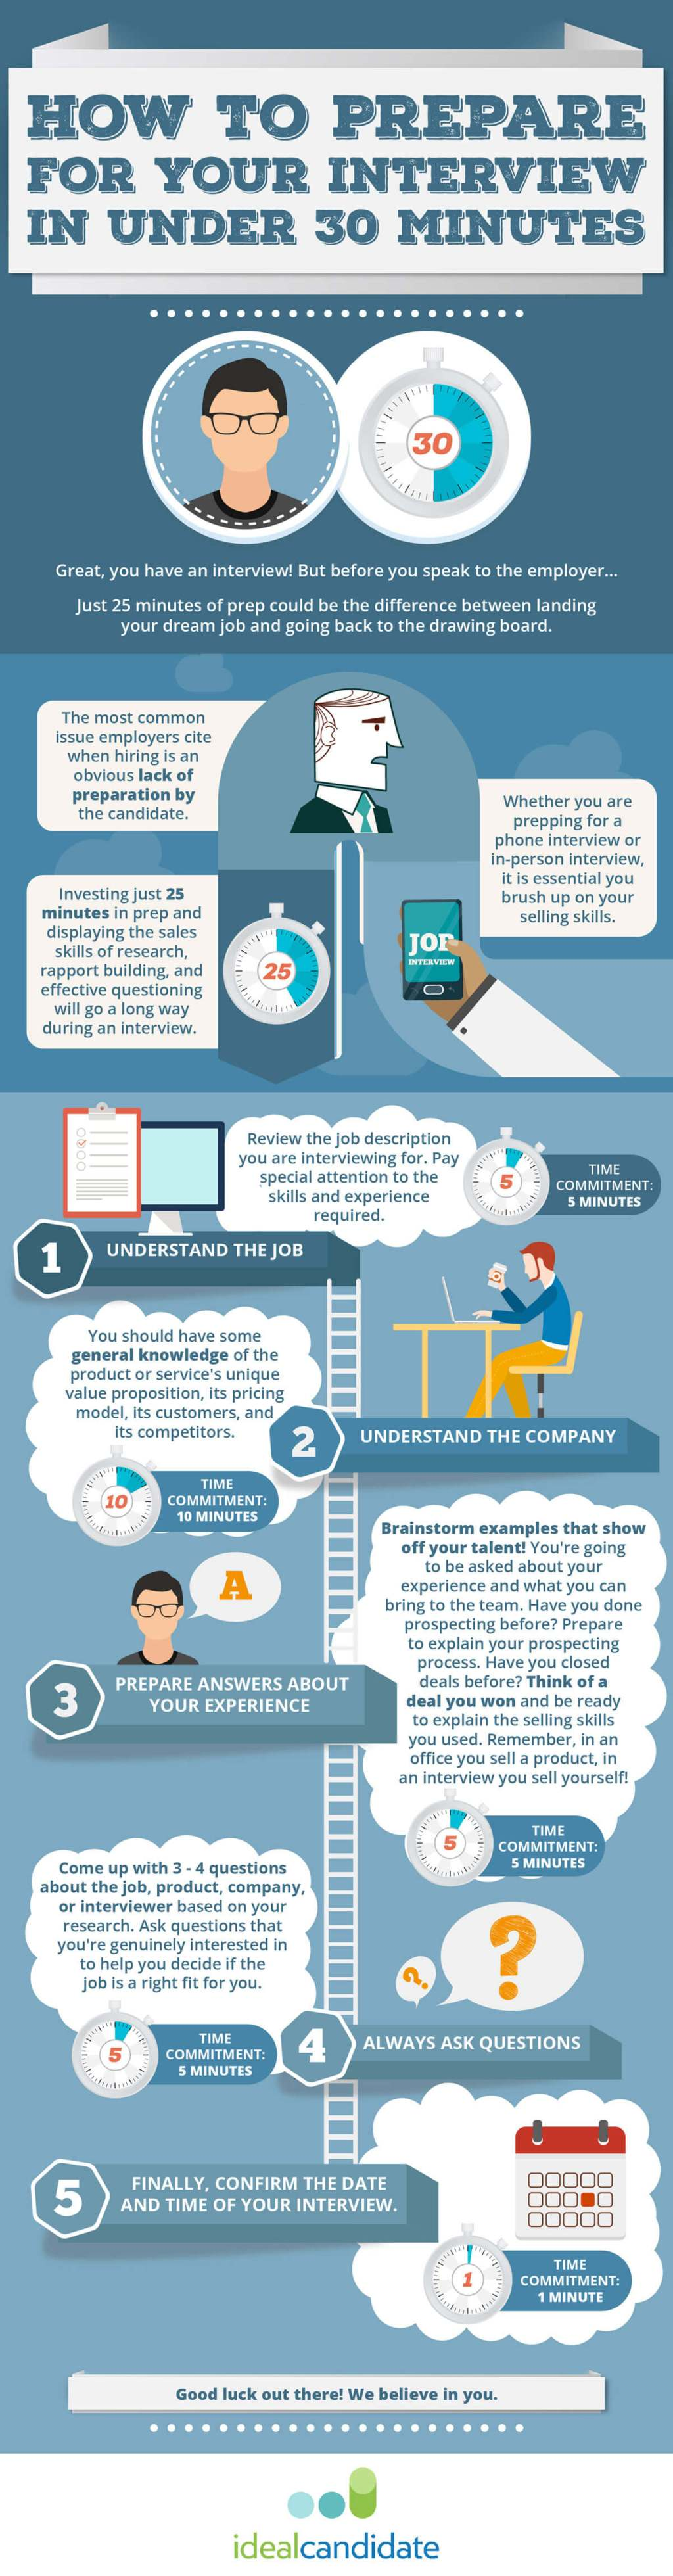 Infographic: How to prepare for your interview in under 30 minutes